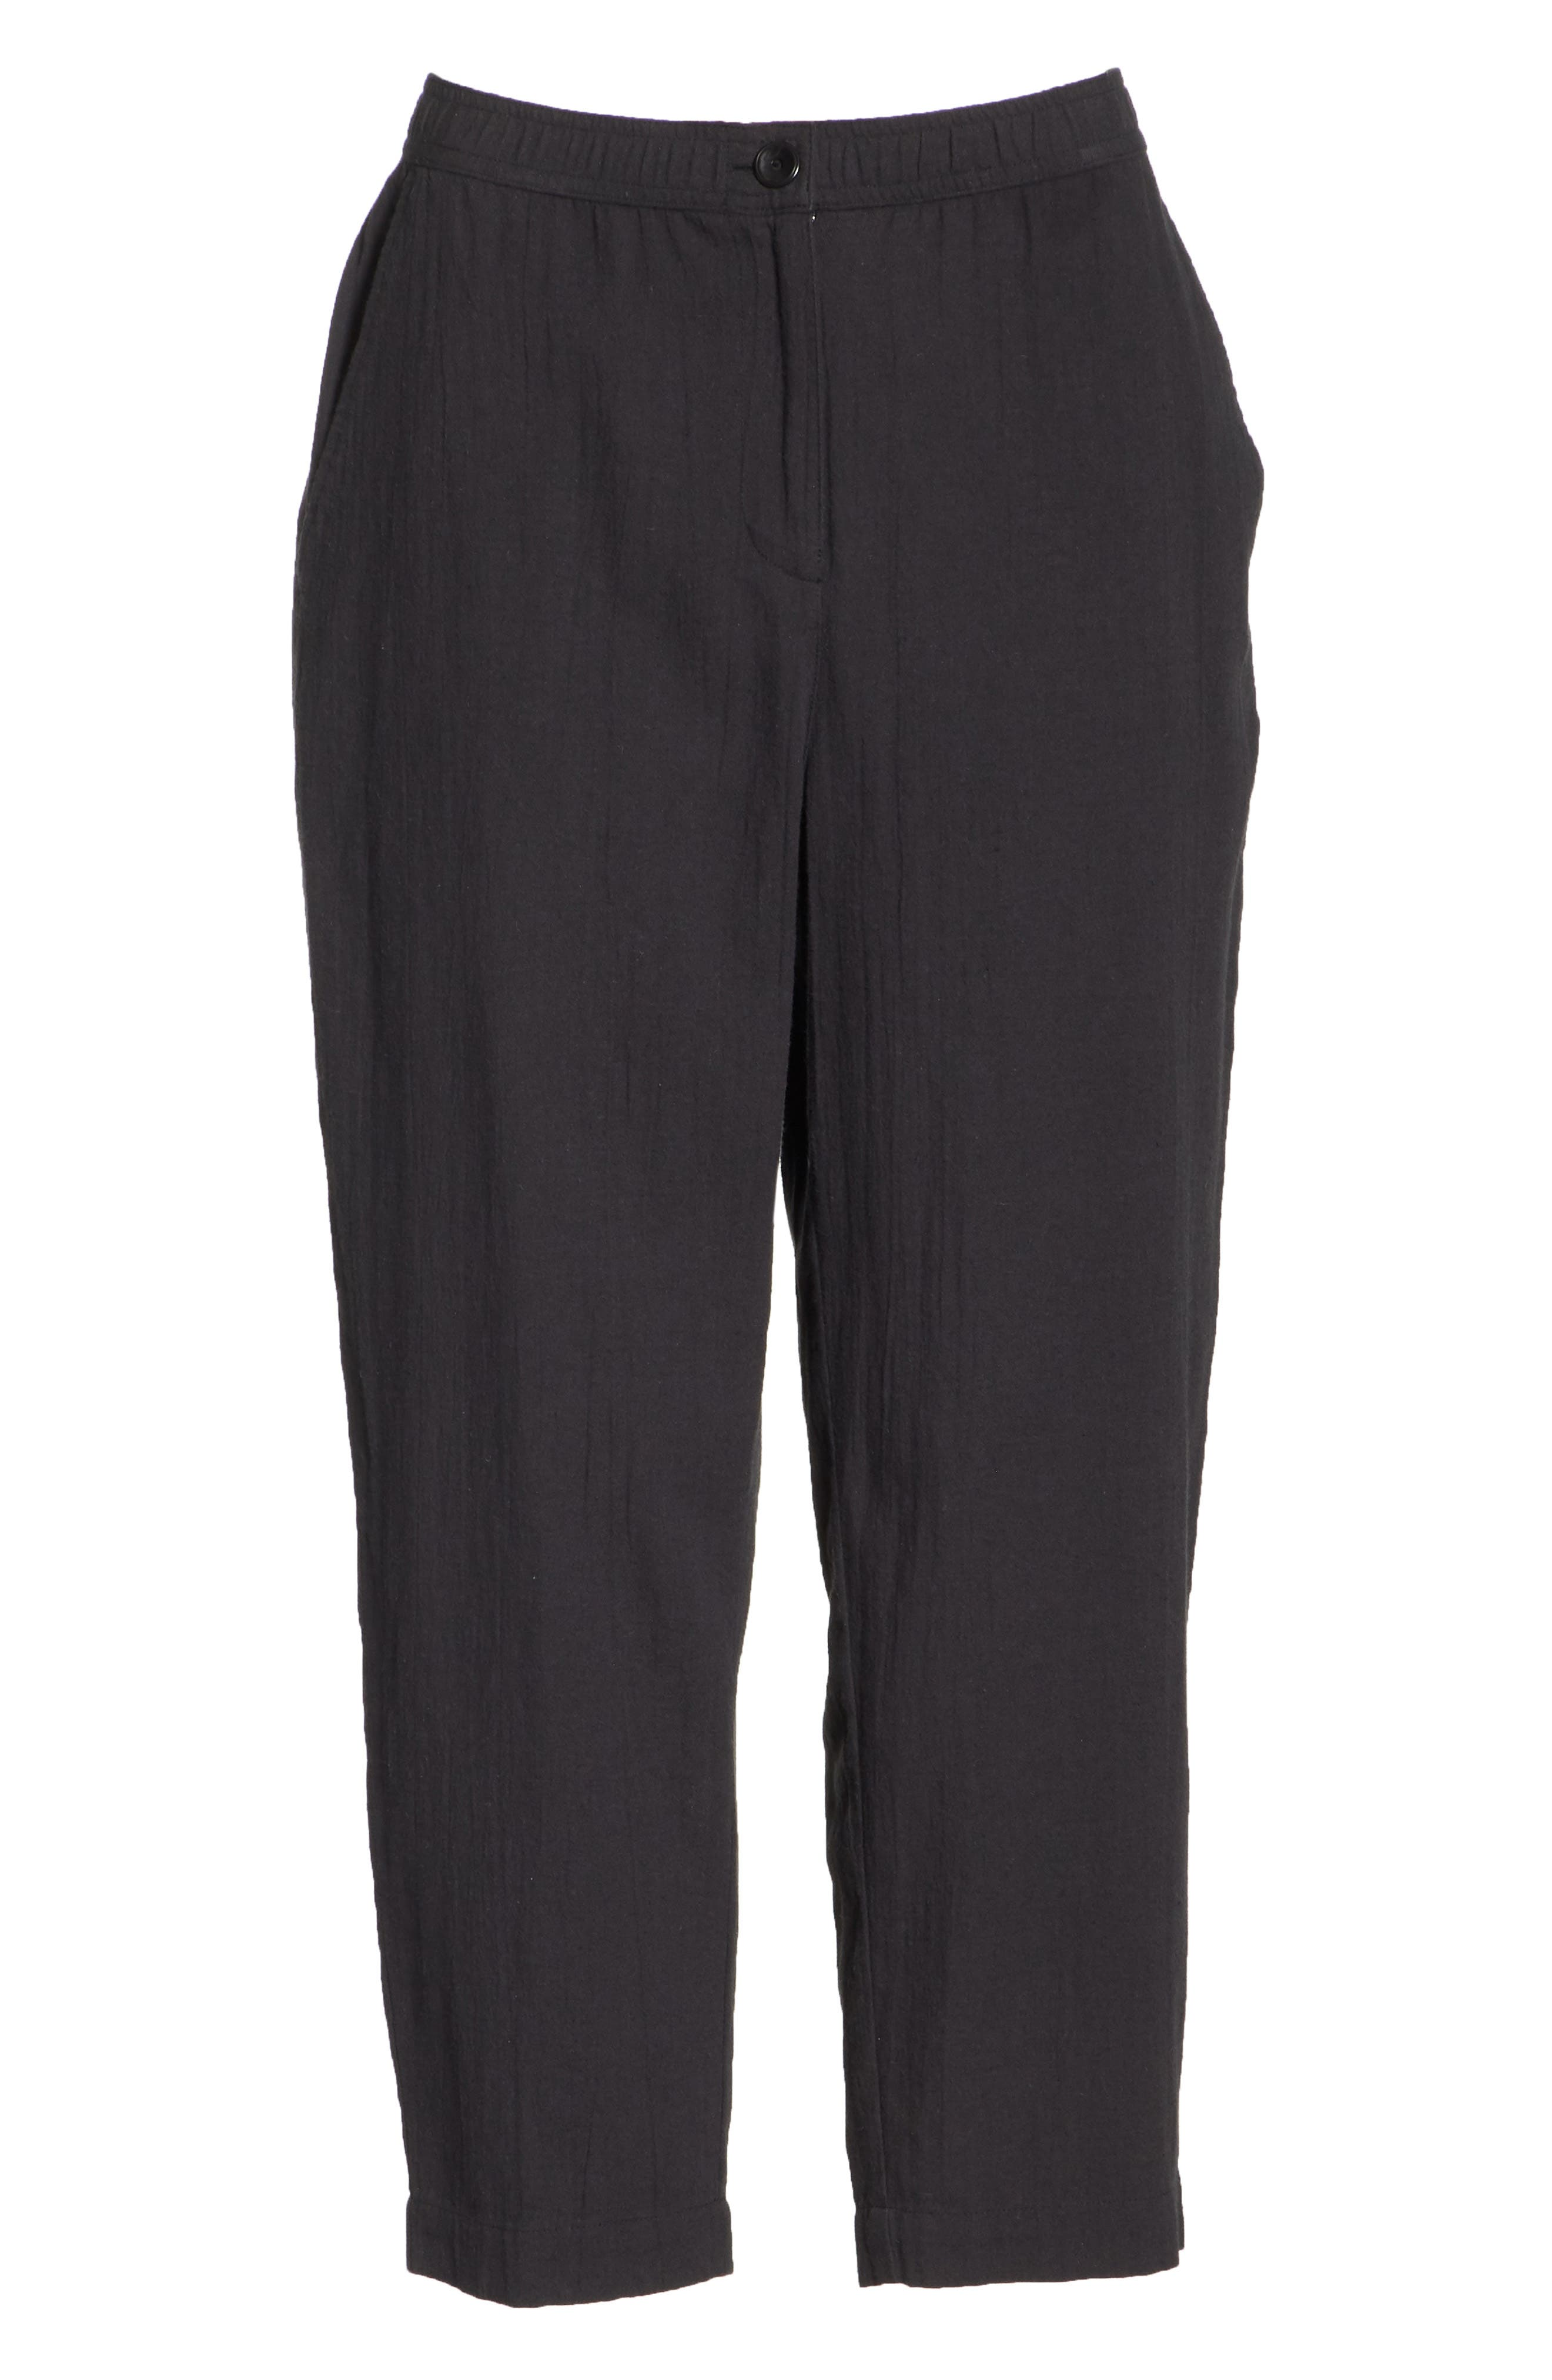 Tapered Cropped Pants,                             Alternate thumbnail 6, color,                             Black